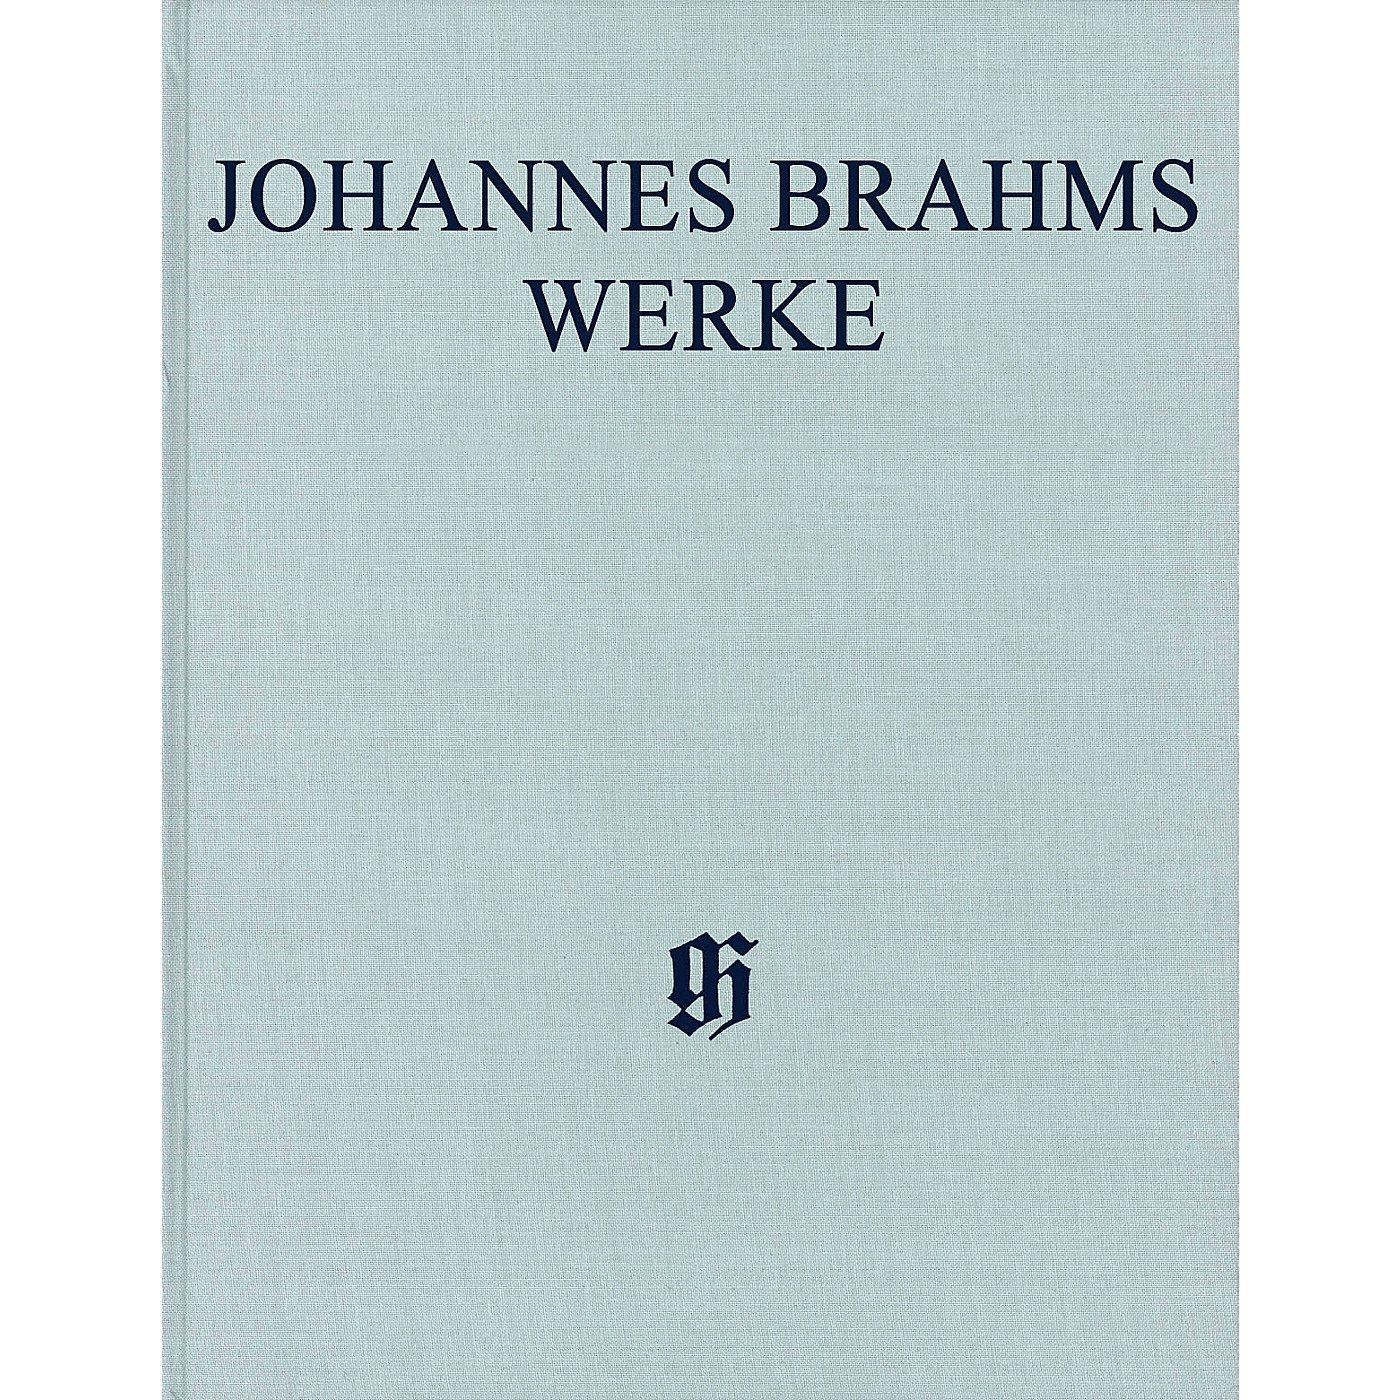 G. Henle Verlag Sonatas for Pa and Violoncello/Sonatas for Cl and Piano Henle Complete Hardcover by Brahms Edited by Voss thumbnail